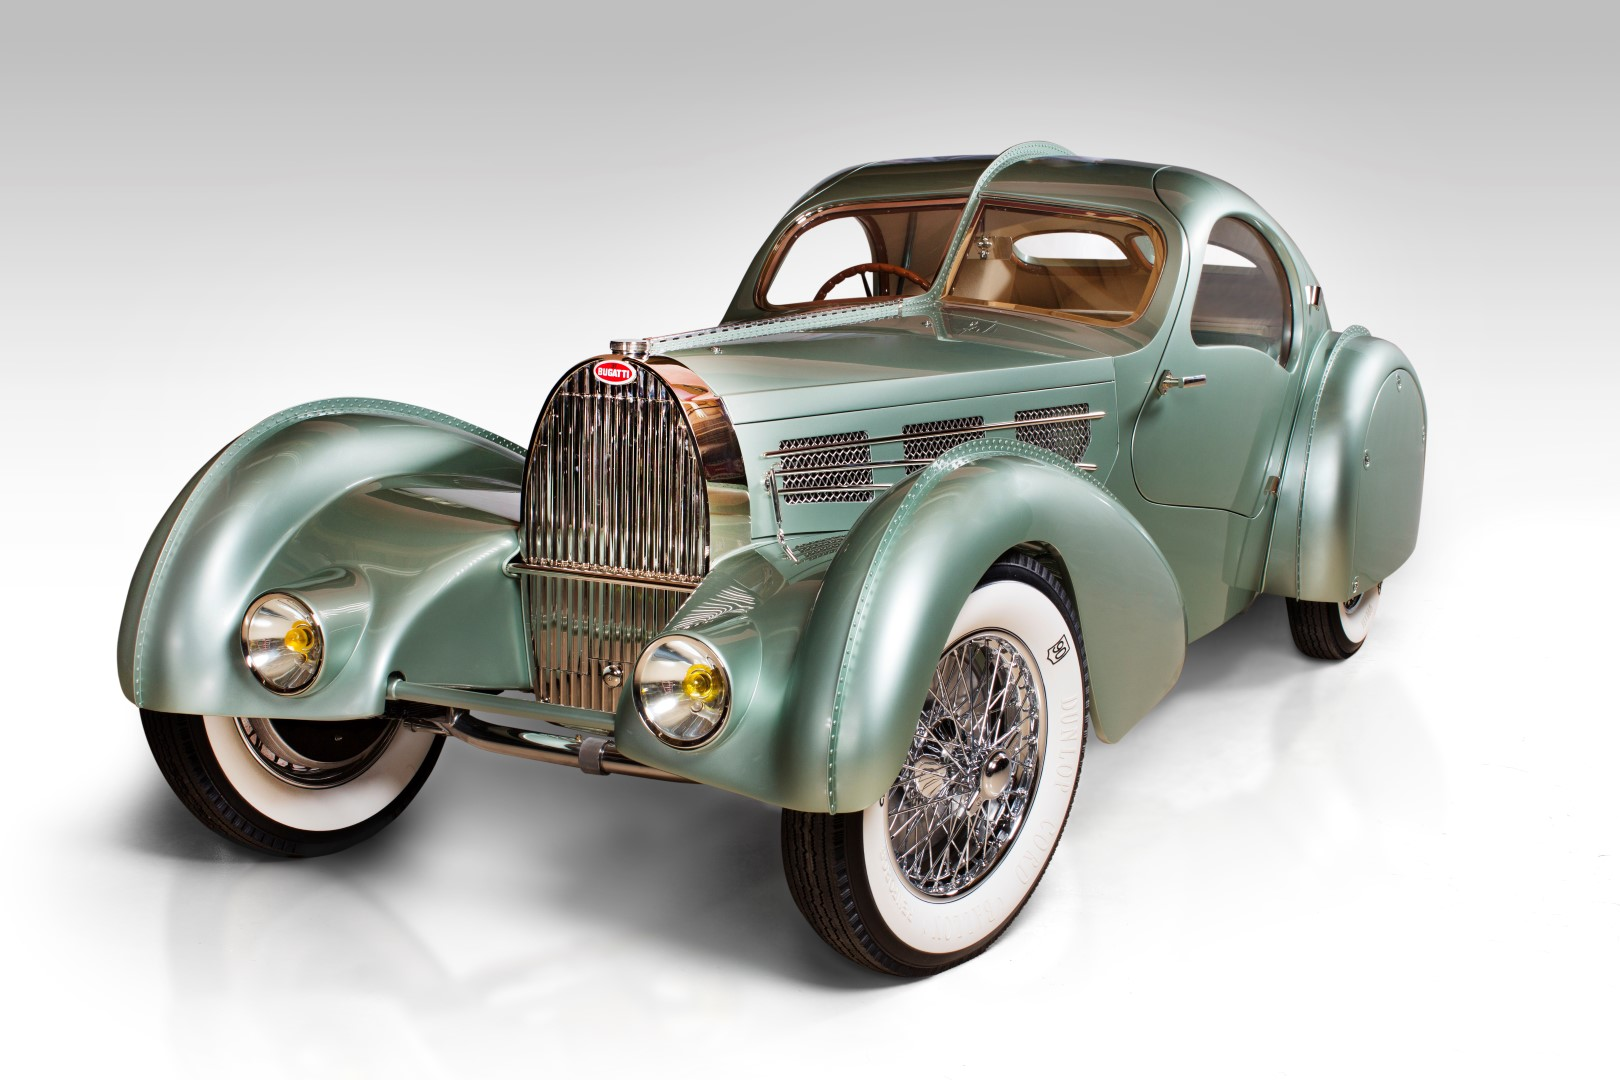 Bugatti_Type_57_Aerolithe_electron_coupe_1935_paris_motor_show_replica_reconstruction_chassis_atlntic_vin_57104_0-100_1